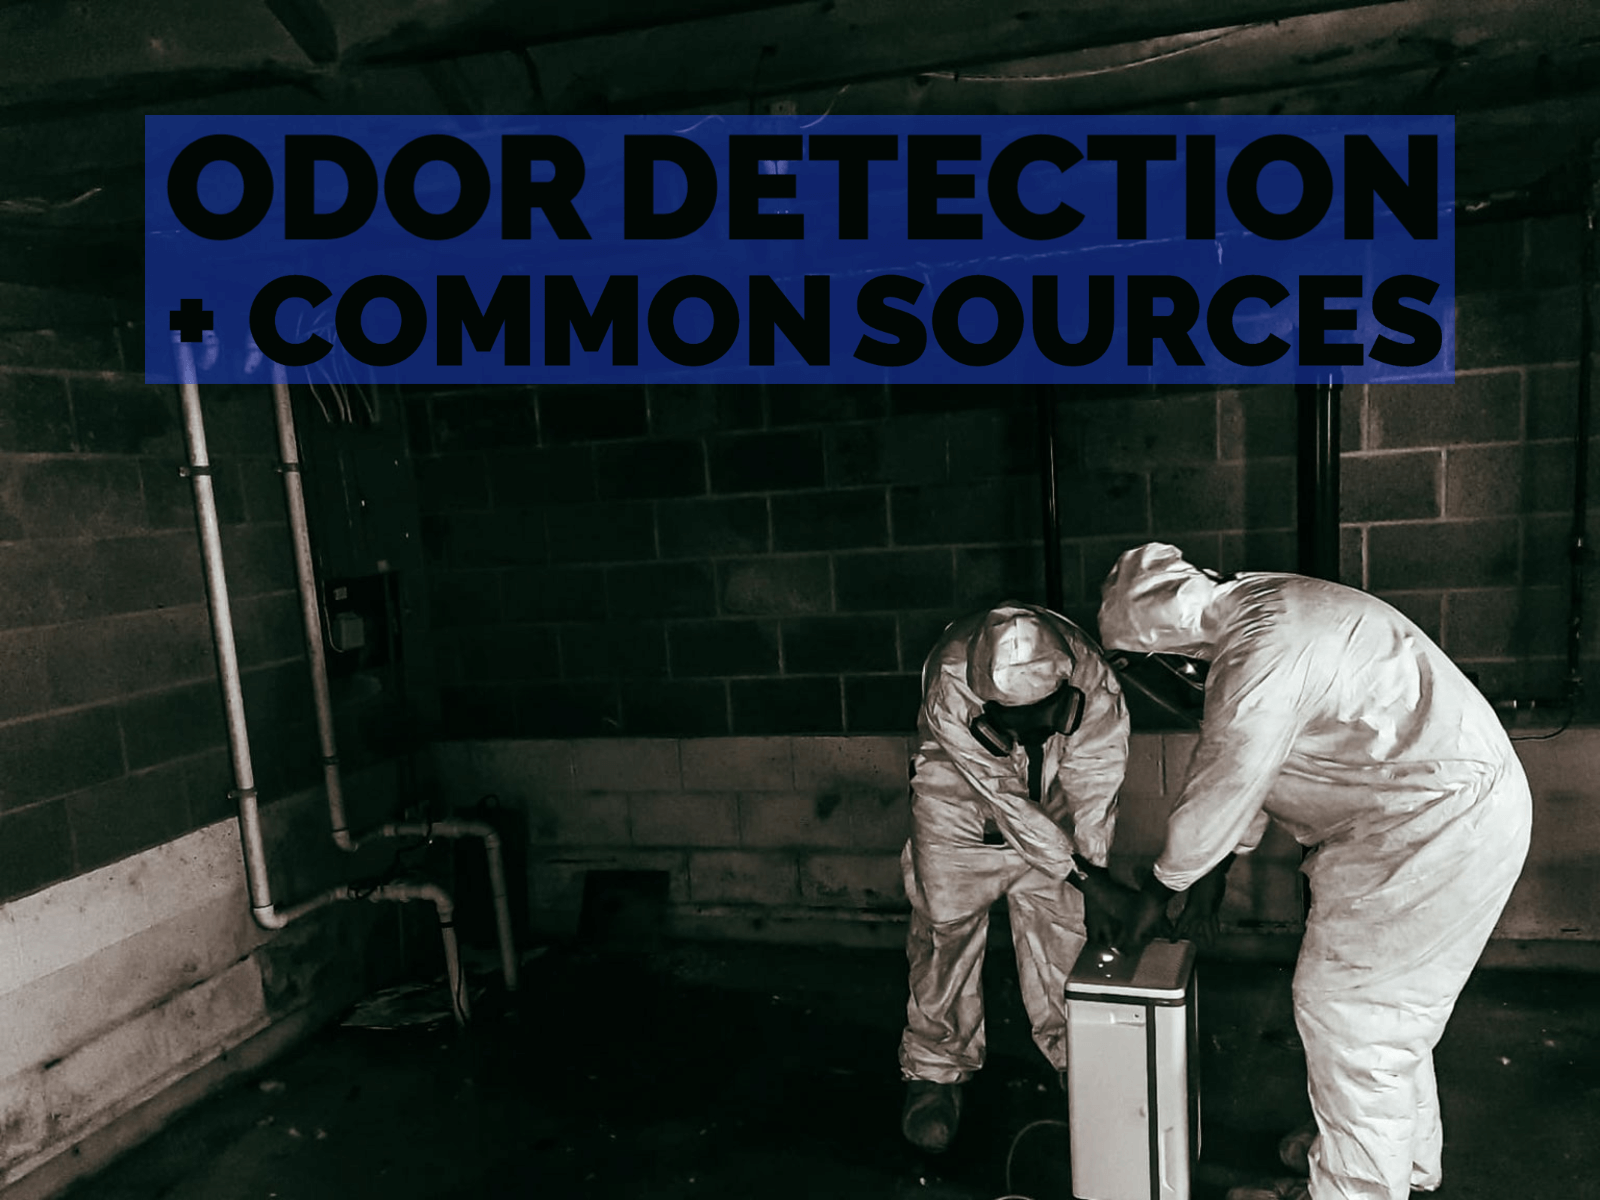 Effective Odor Detection and Common Sources of Odor